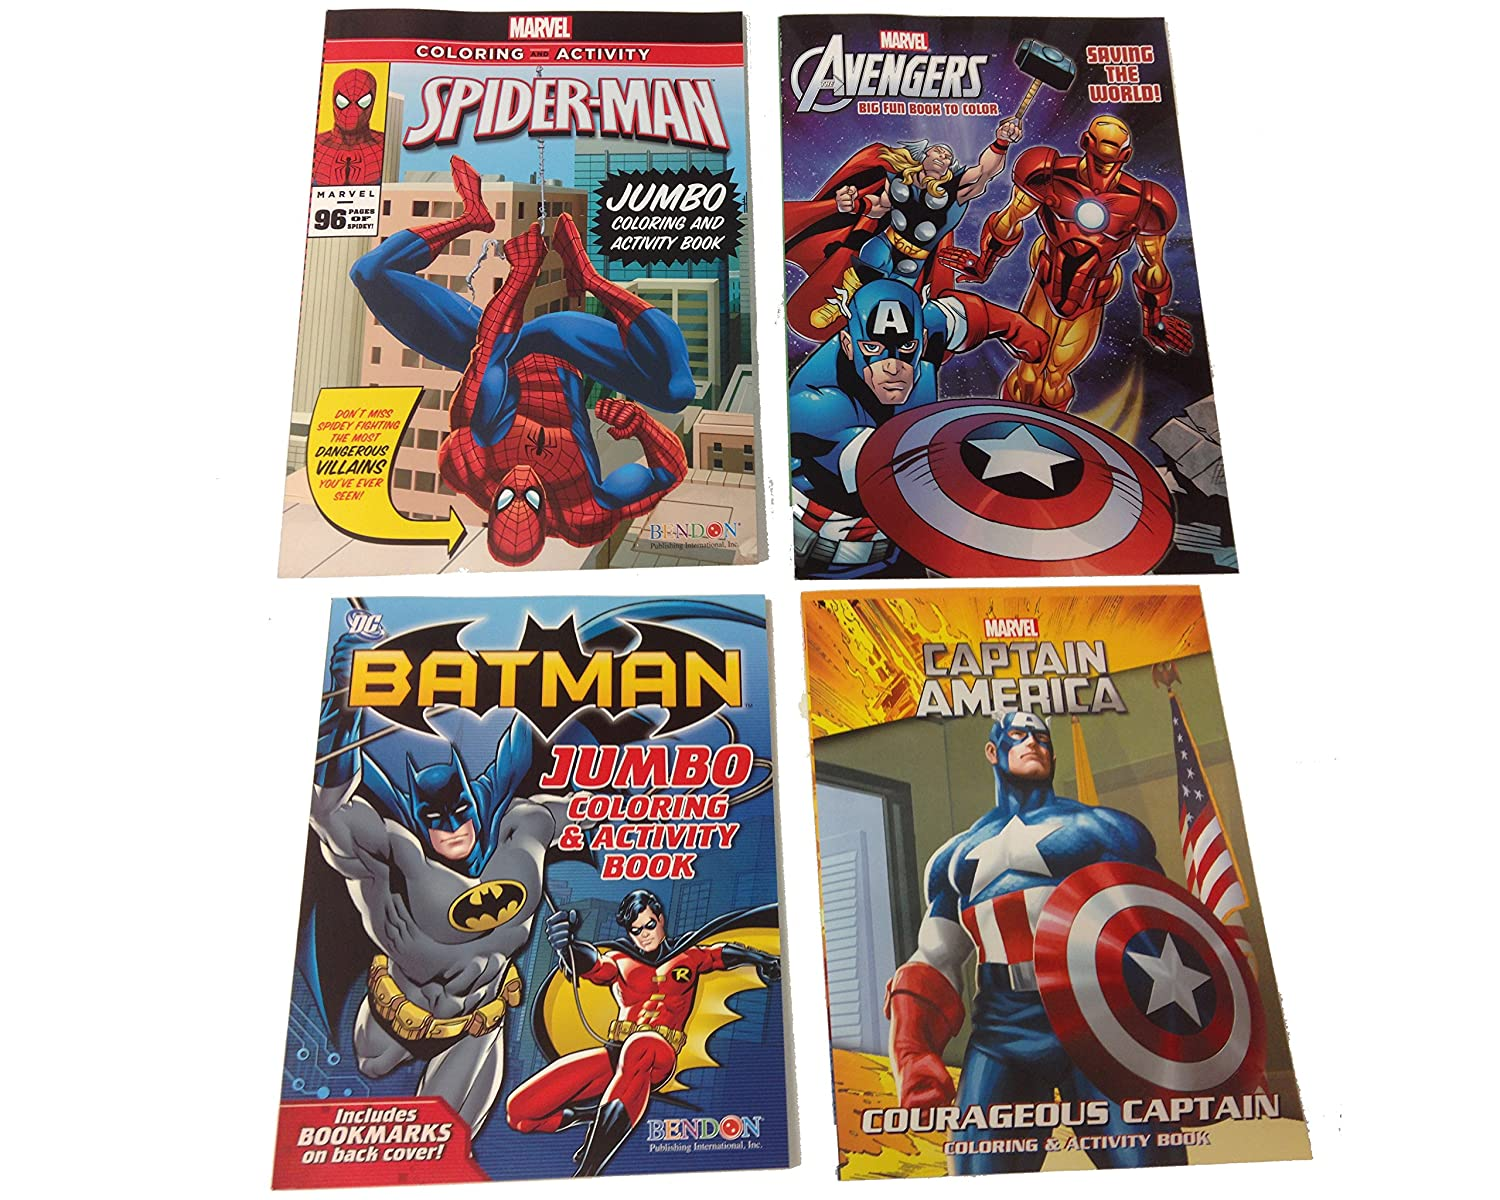 Marvel Colouring and Activity Books - Ultimate Gift Set for Kids - 3 Marvel Books Plus 1 Free Dc Comics Book - Avengers - Captain America - Spiderman - Plus Dc Comic Batman and a Box of Crayons   B00N2918J8